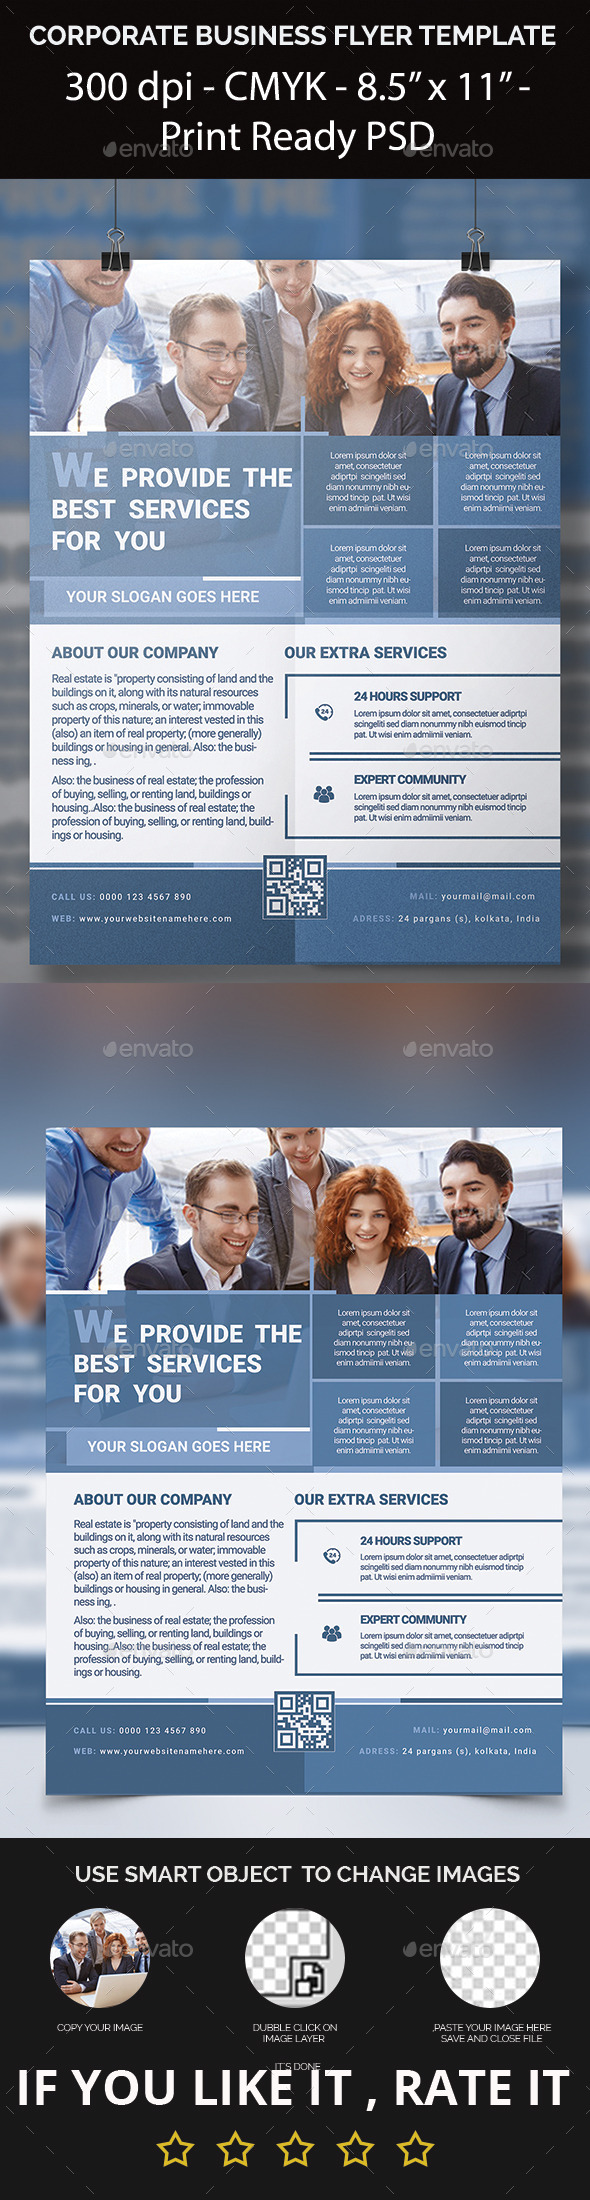 GraphicRiver Corporate Business Flyer Template 11775155